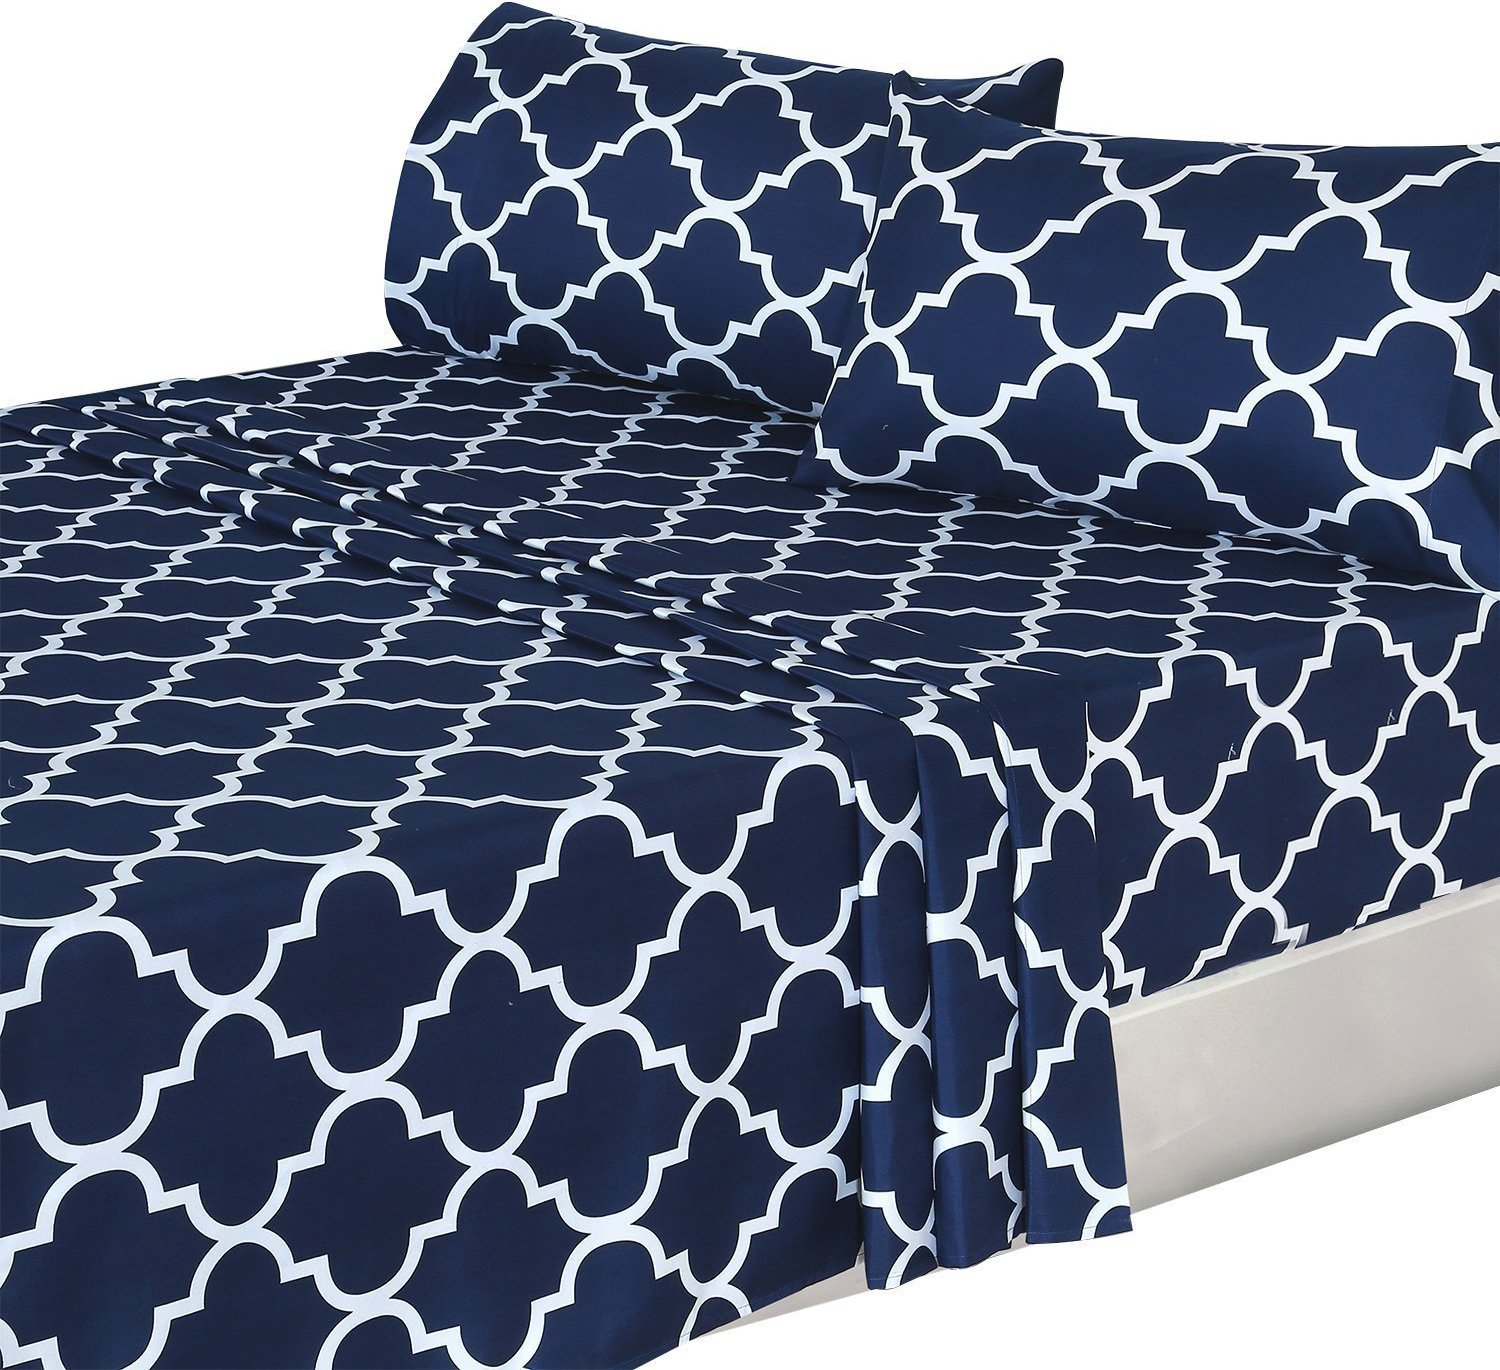 Amazon.com: Utopia Bedding 3 Piece Bed Sheet Set (Twin, Navy)   1 Flat Sheet,  1 Fitted Sheet, And 1 Pillow Case   Hotel Quality Luxurious Brushed Velvety  ...